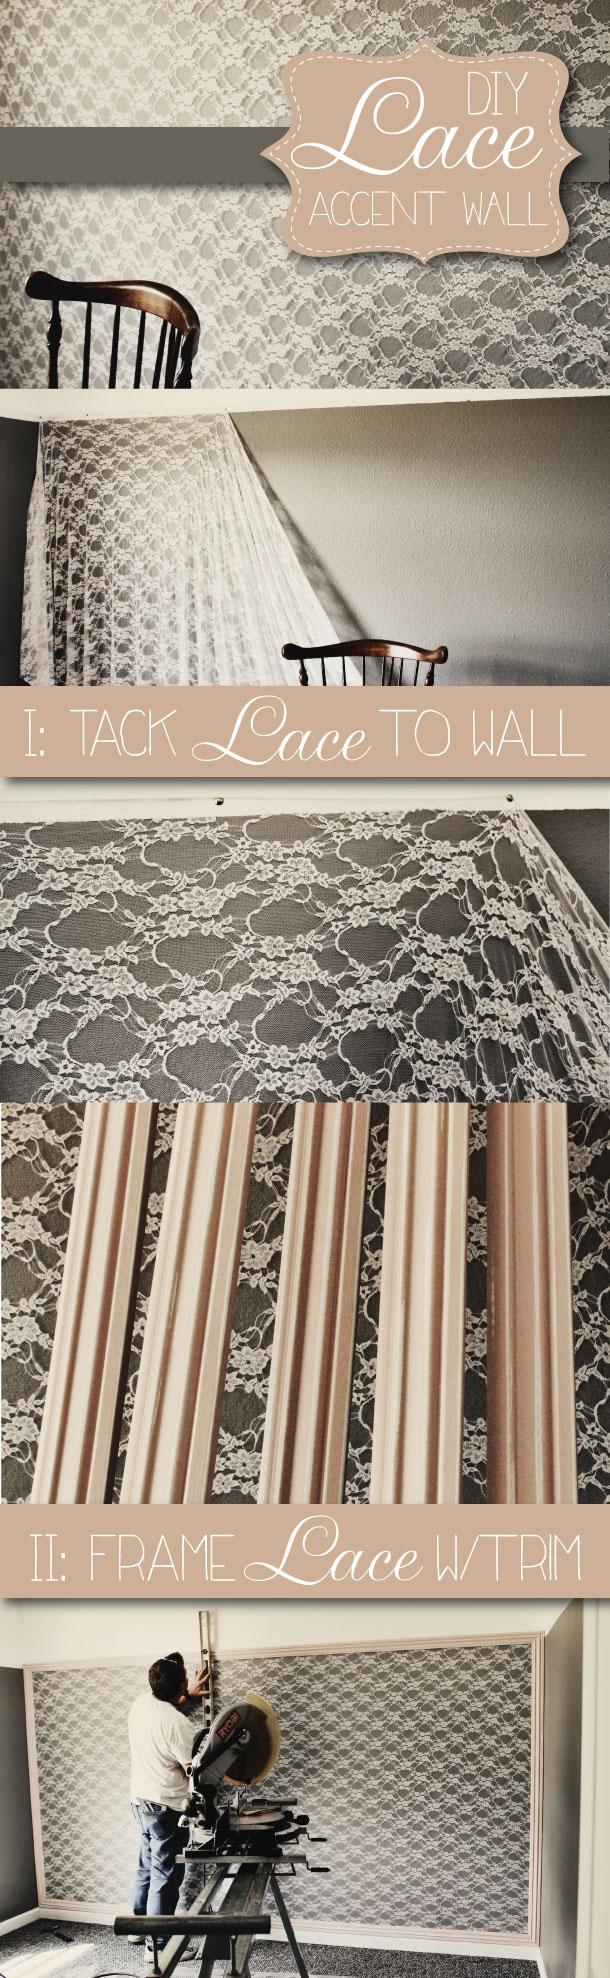 lace-accent-wall